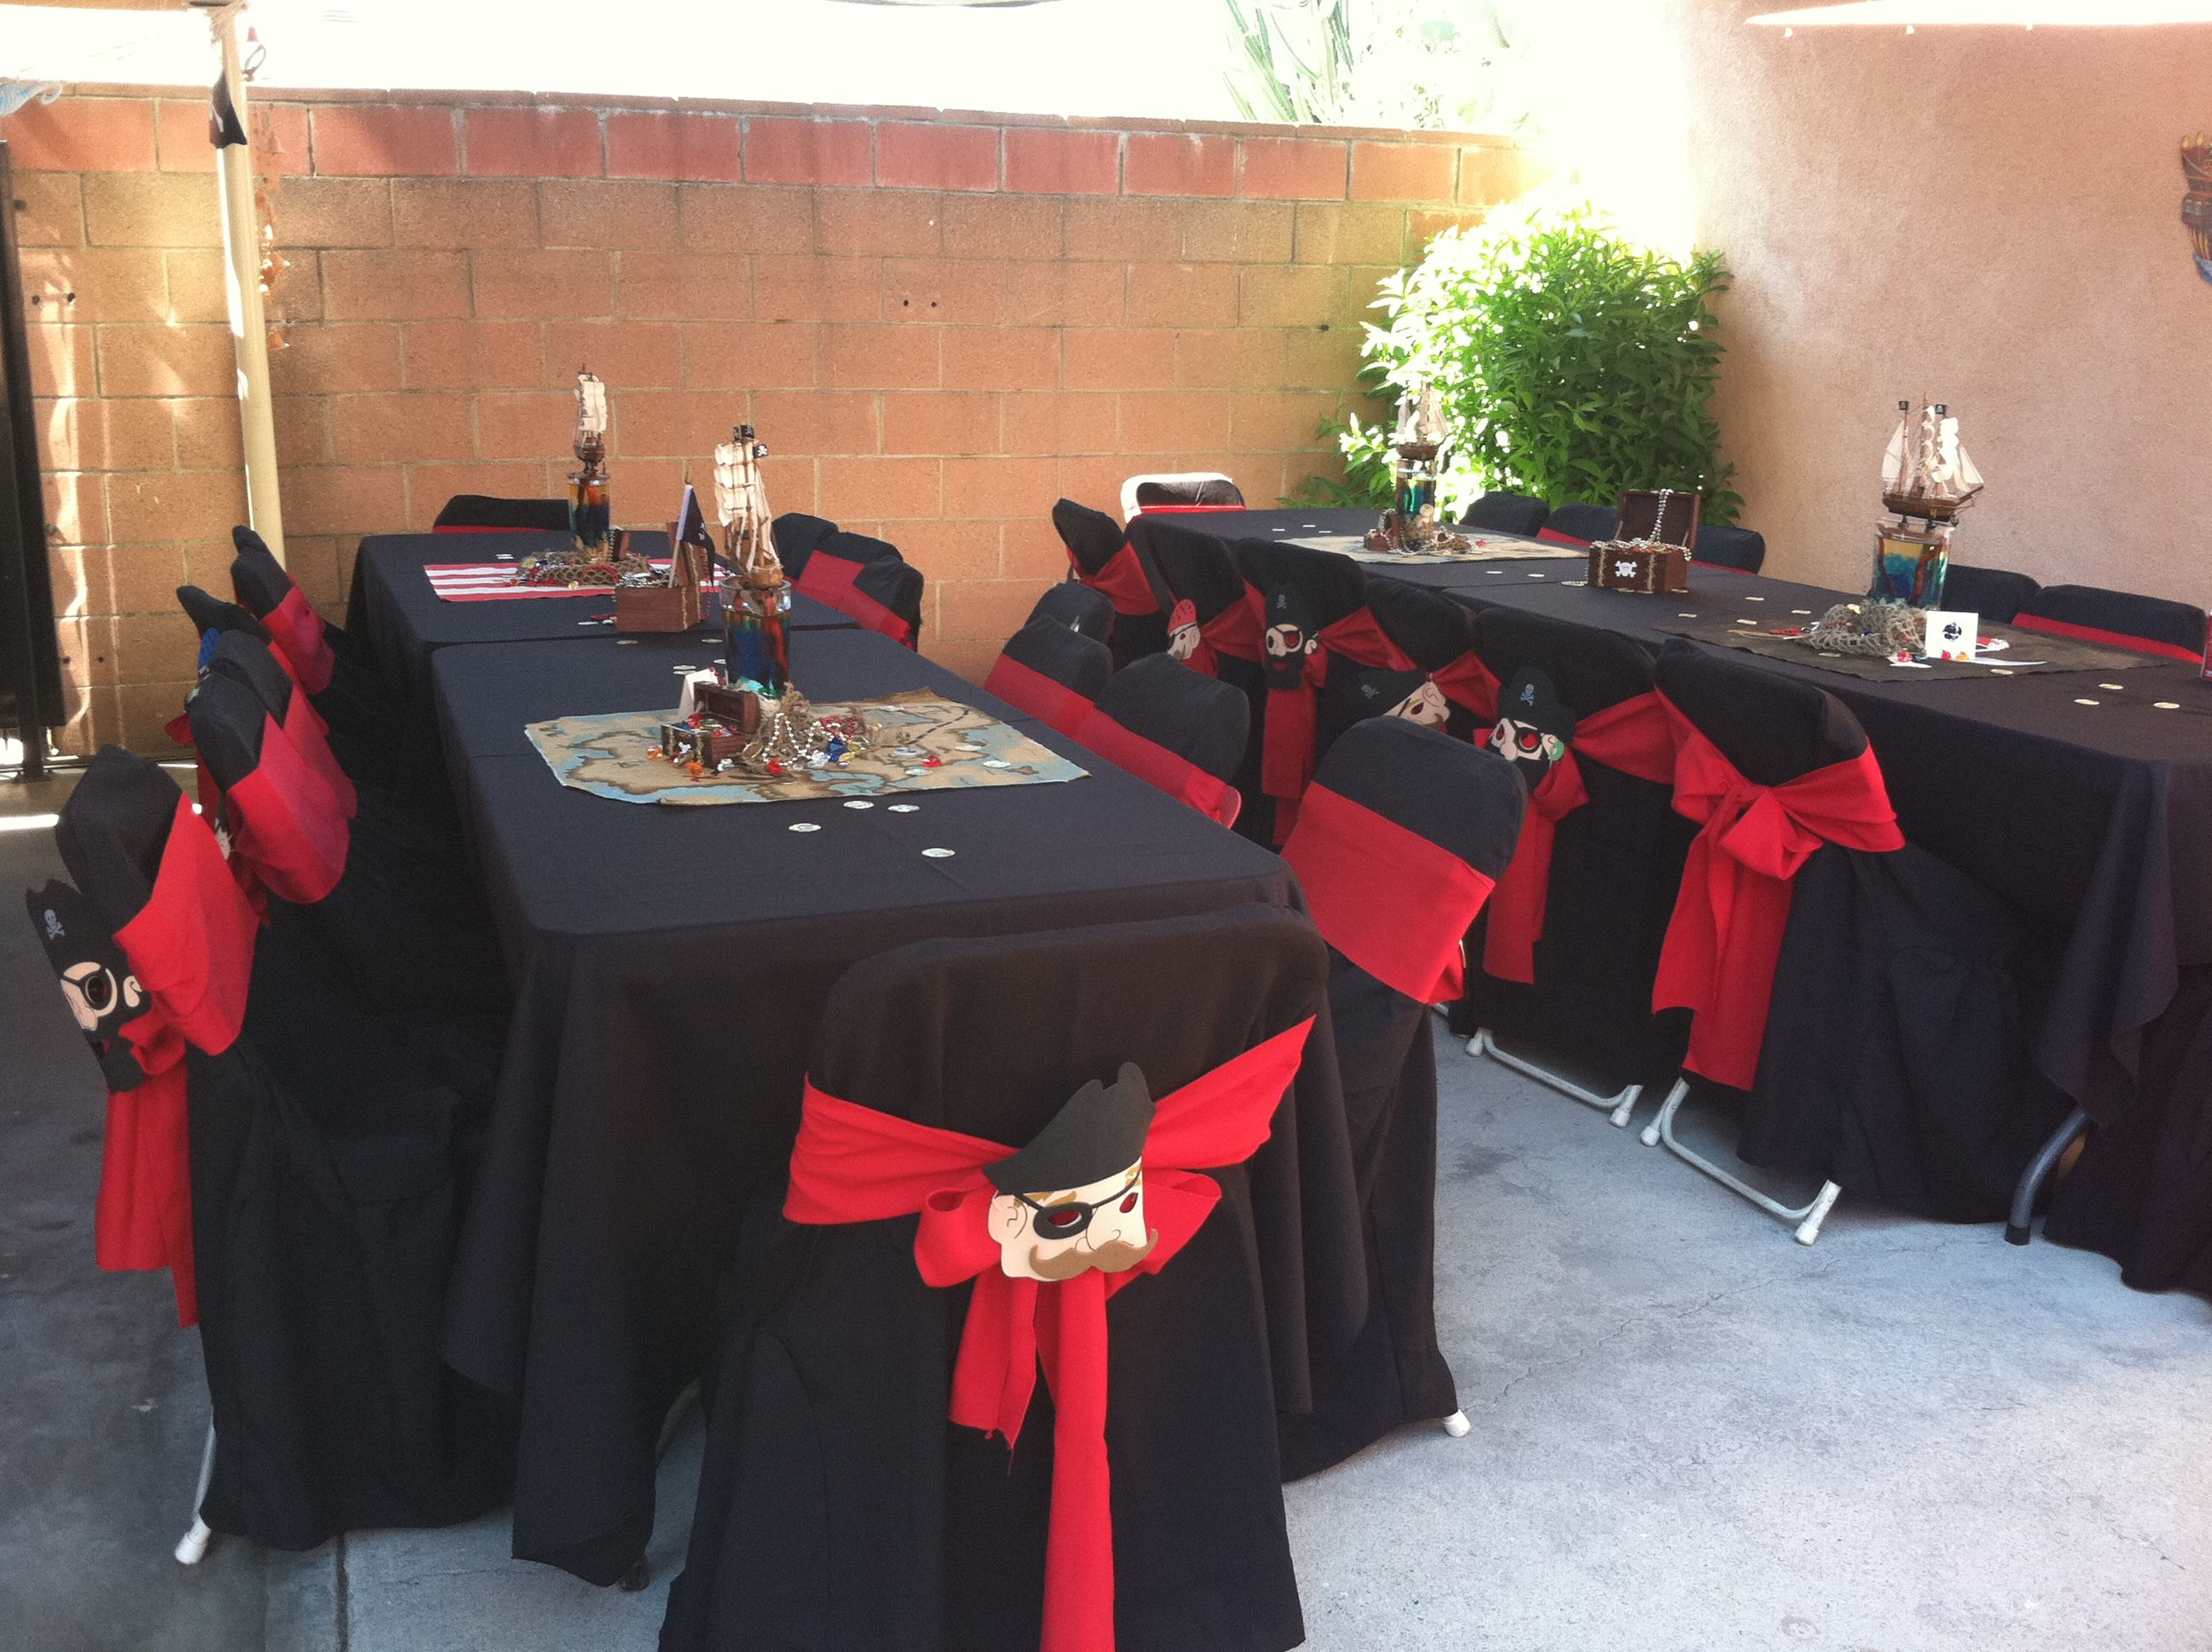 pirate party decoration black table cloth black chair covers with red bow and foamie pirate. Black Bedroom Furniture Sets. Home Design Ideas